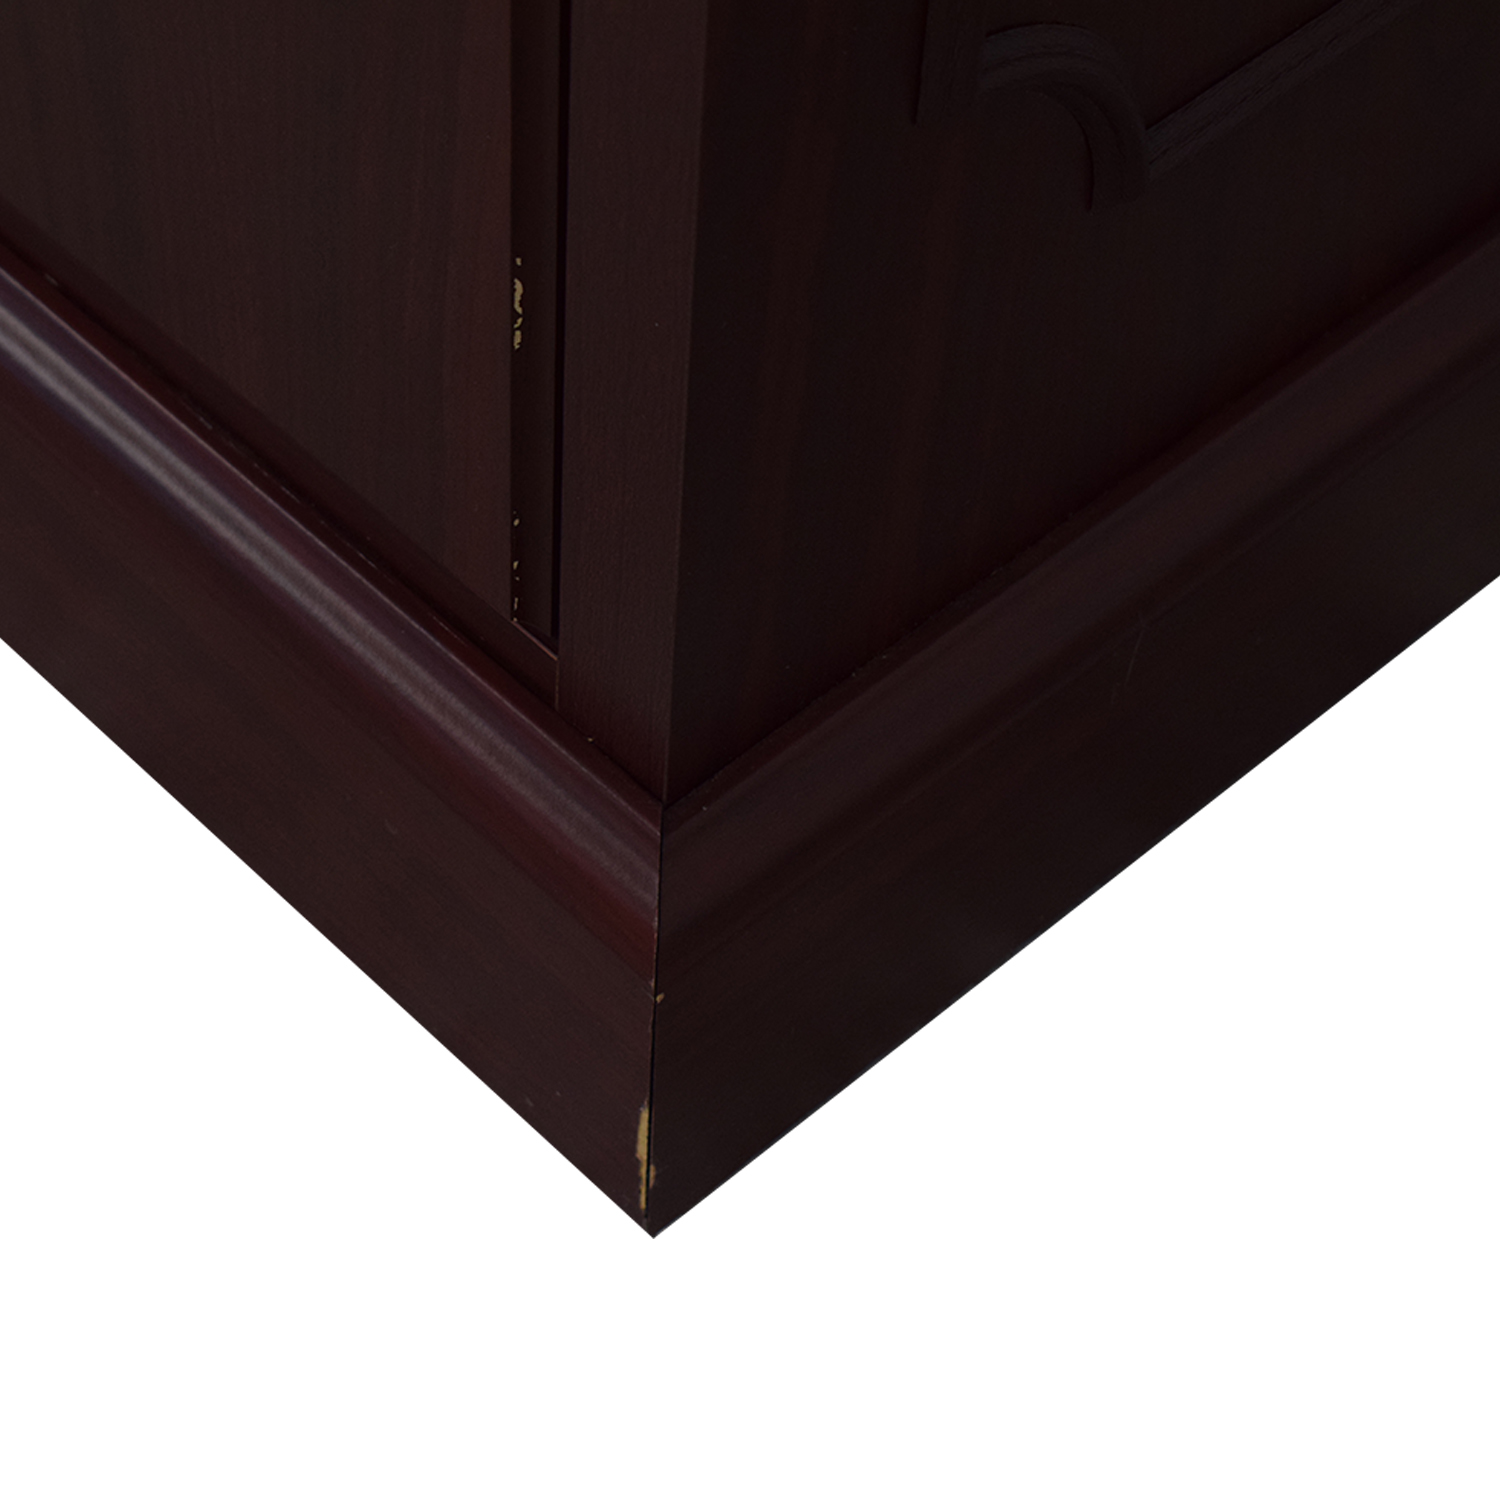 Hon HON Furniture Filing Cabinet with Book Shelf coupon